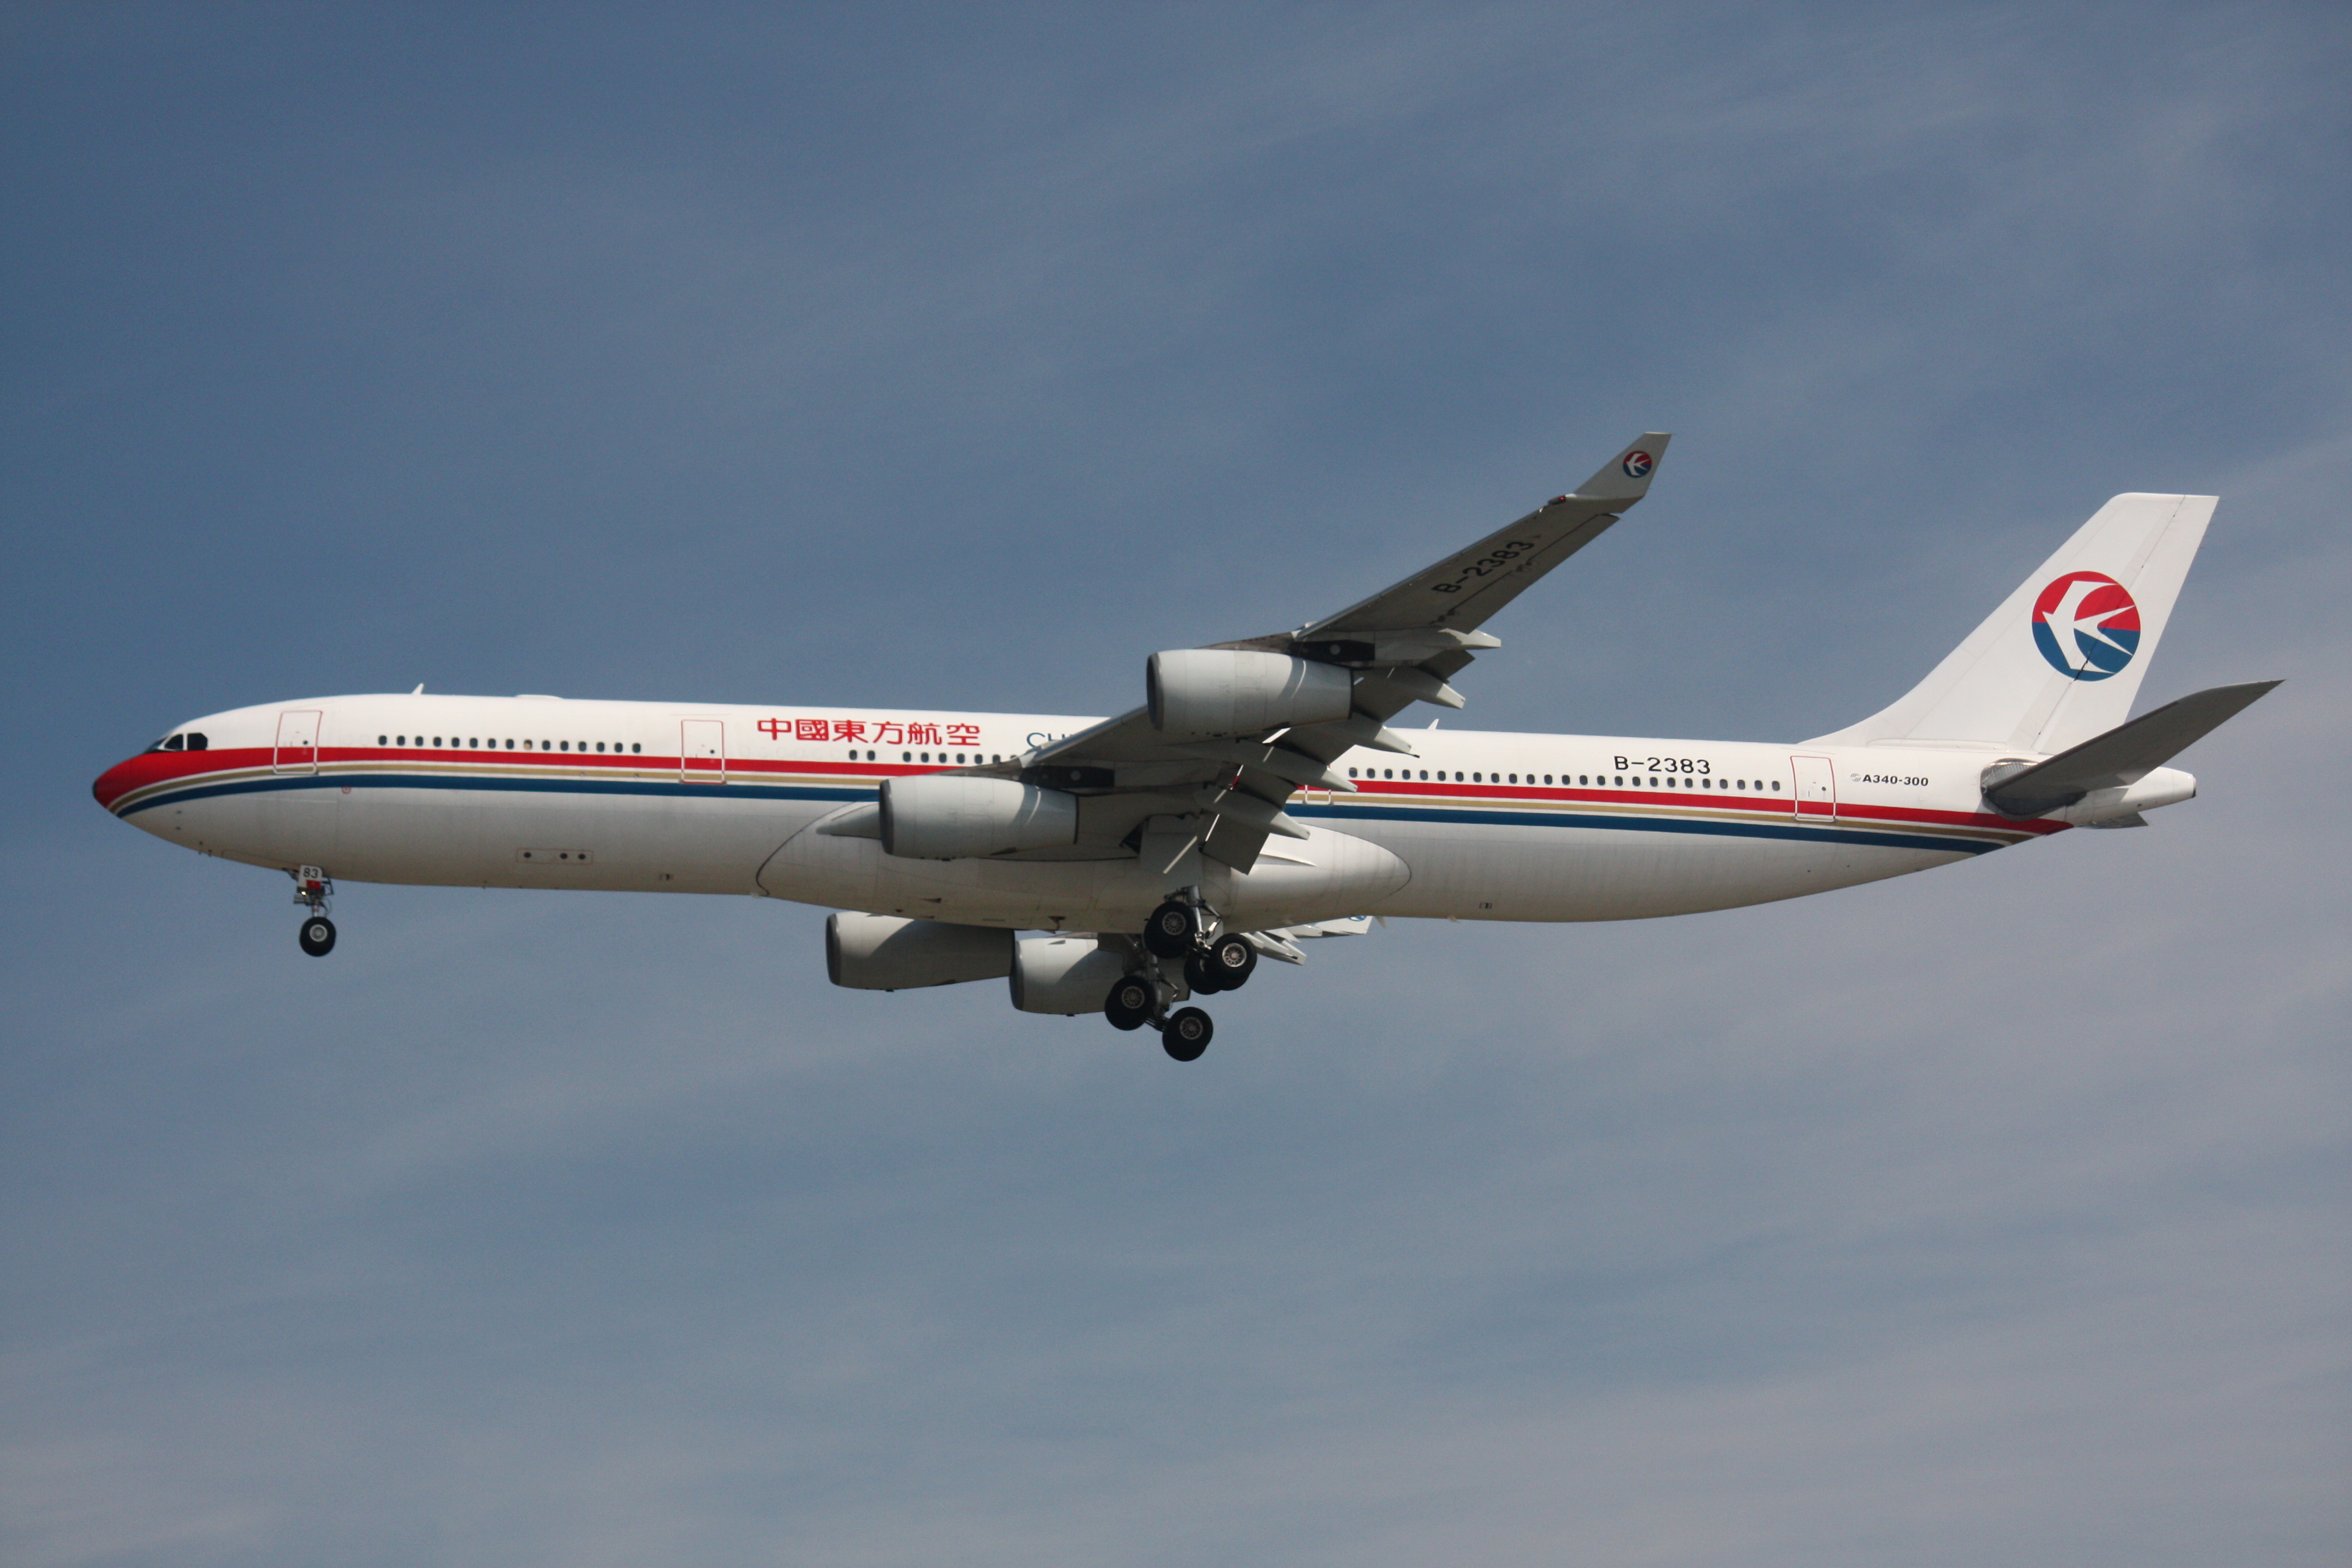 Depiction of China Eastern Airlines